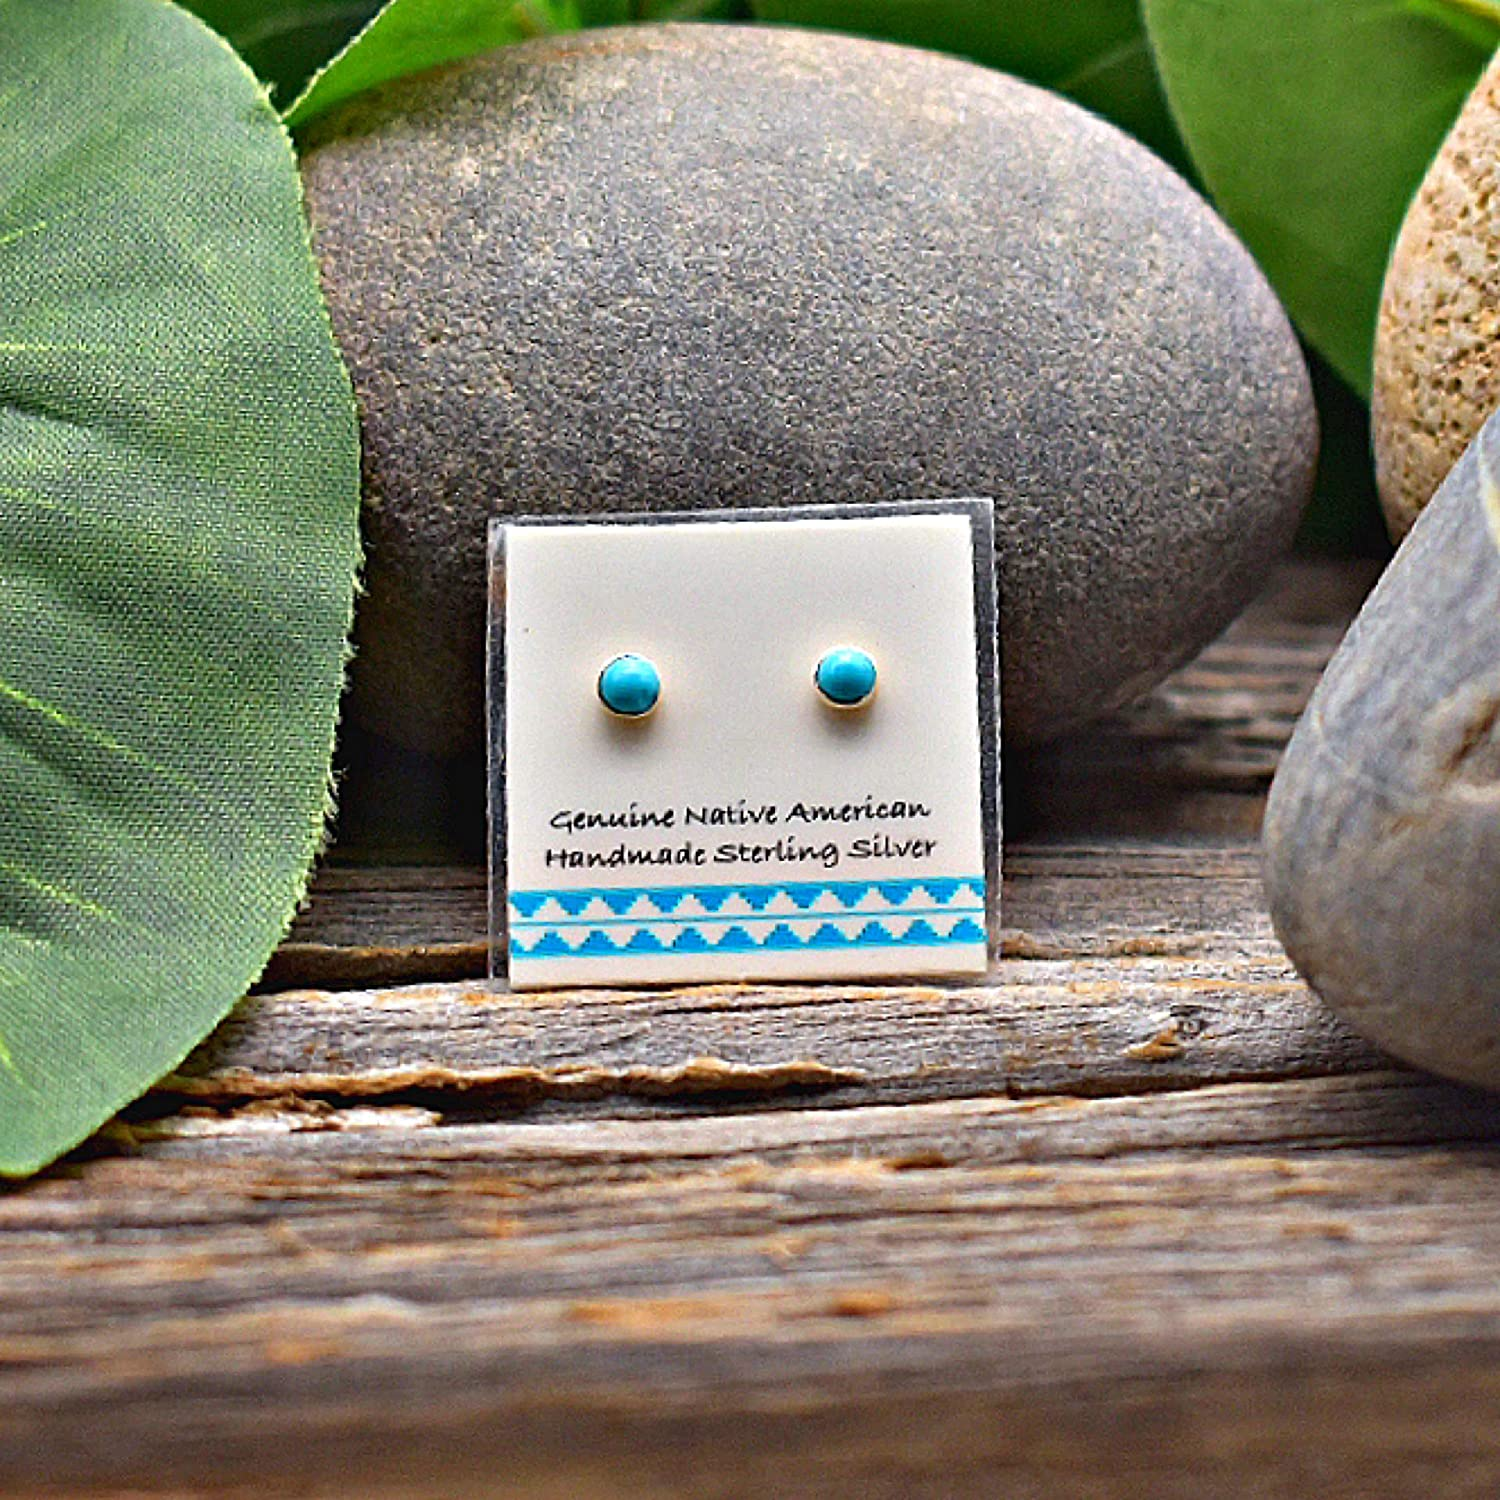 3Mm Sleeping Beauty Turquoise Stud Earrings bei 925 Sterling Silver, Authentic Native American Handmade bei die Usa, Minimalist Style, Nickle Free